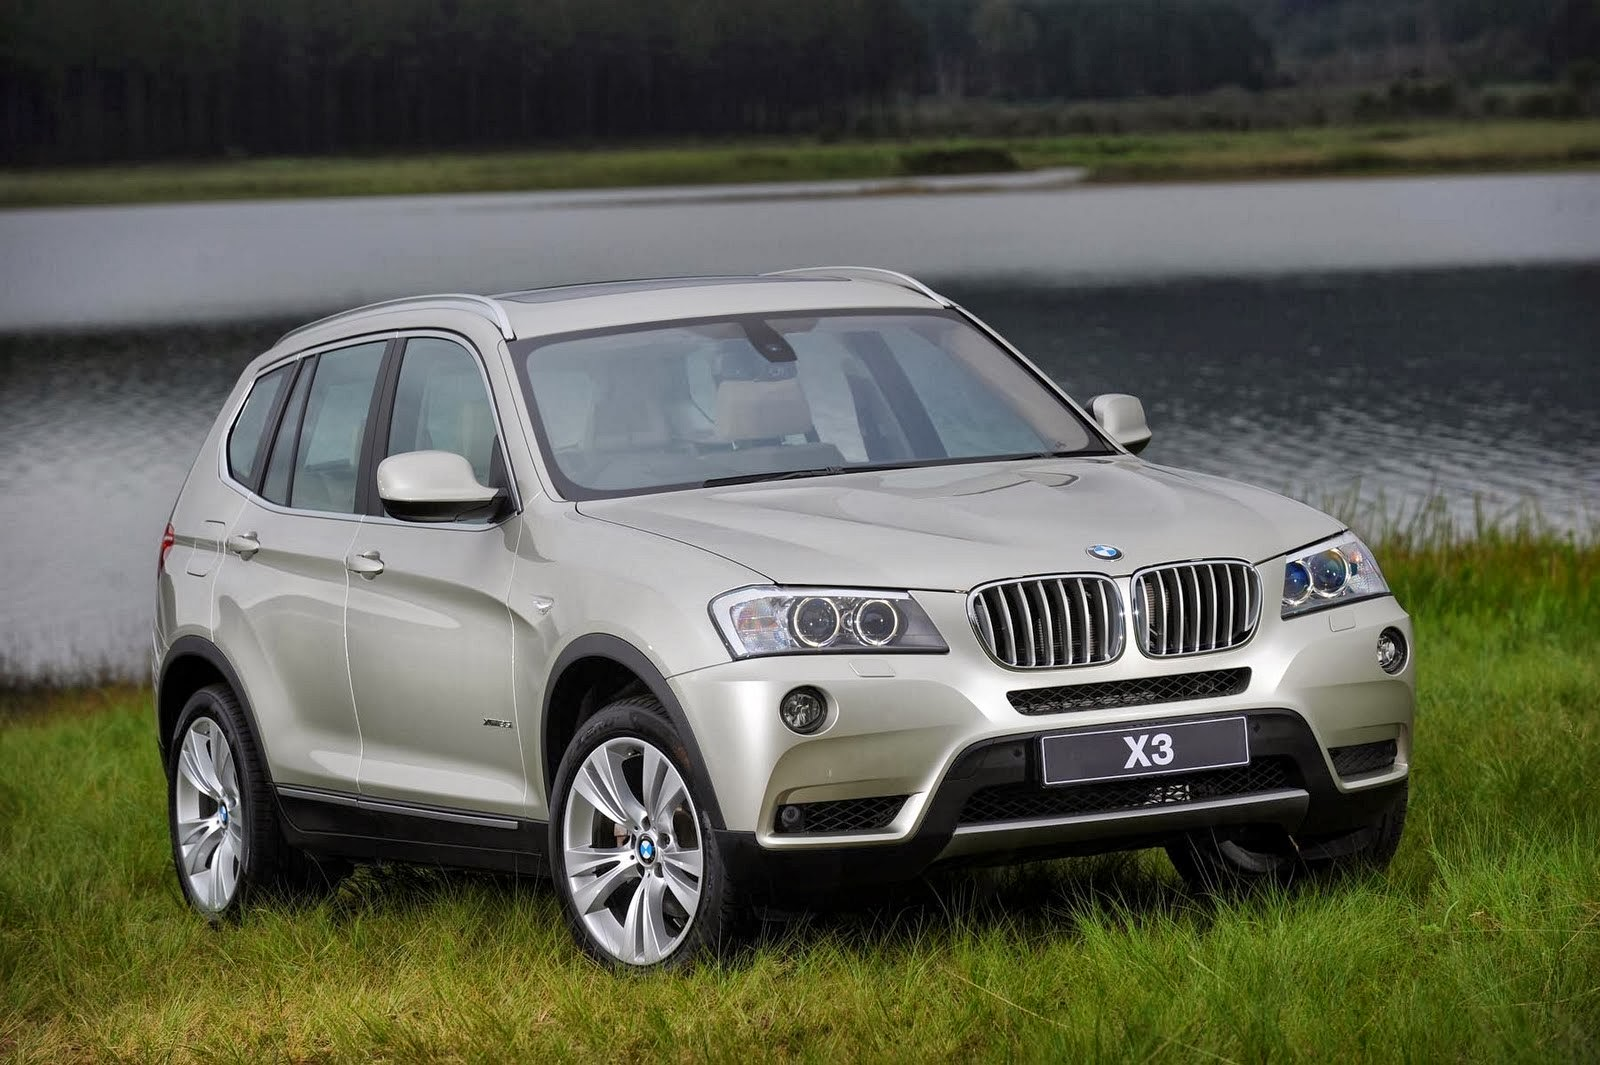 bmw x3 xdrive35i car review - all new cars wallpapers gallery